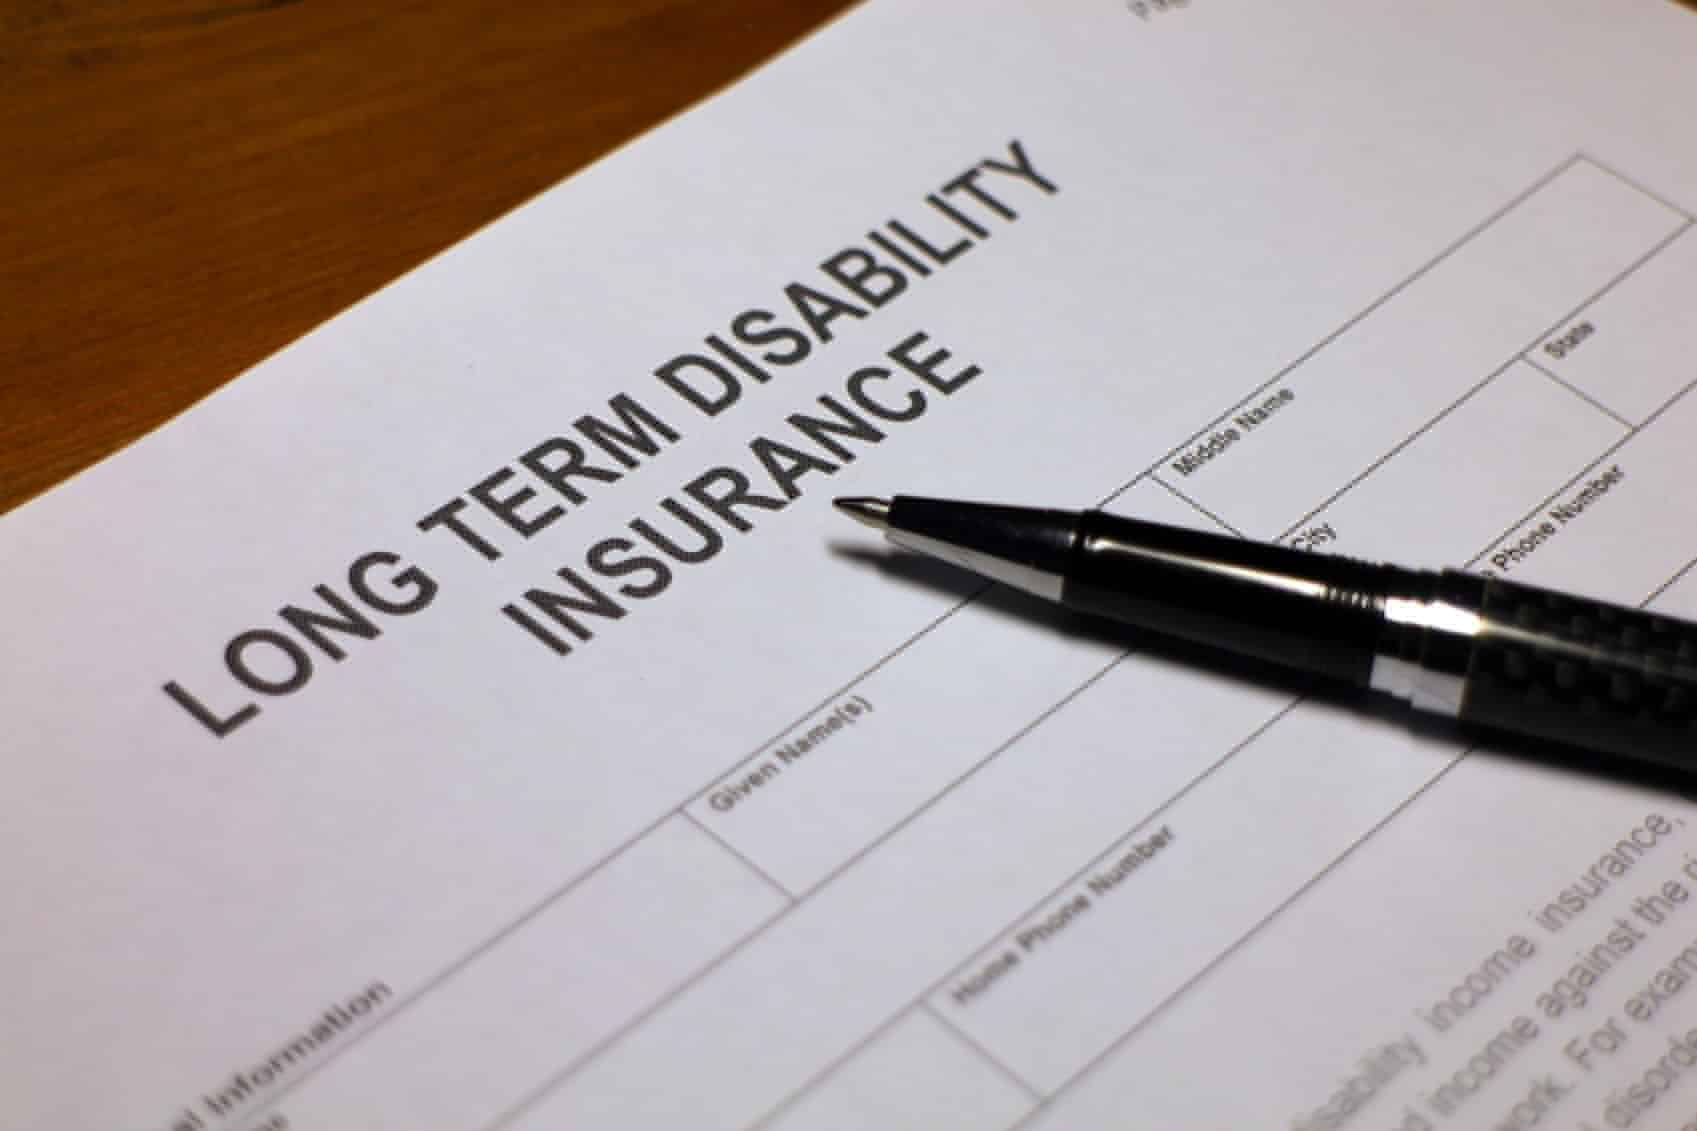 Someone filling out Long term Disability Insurance Application Form.